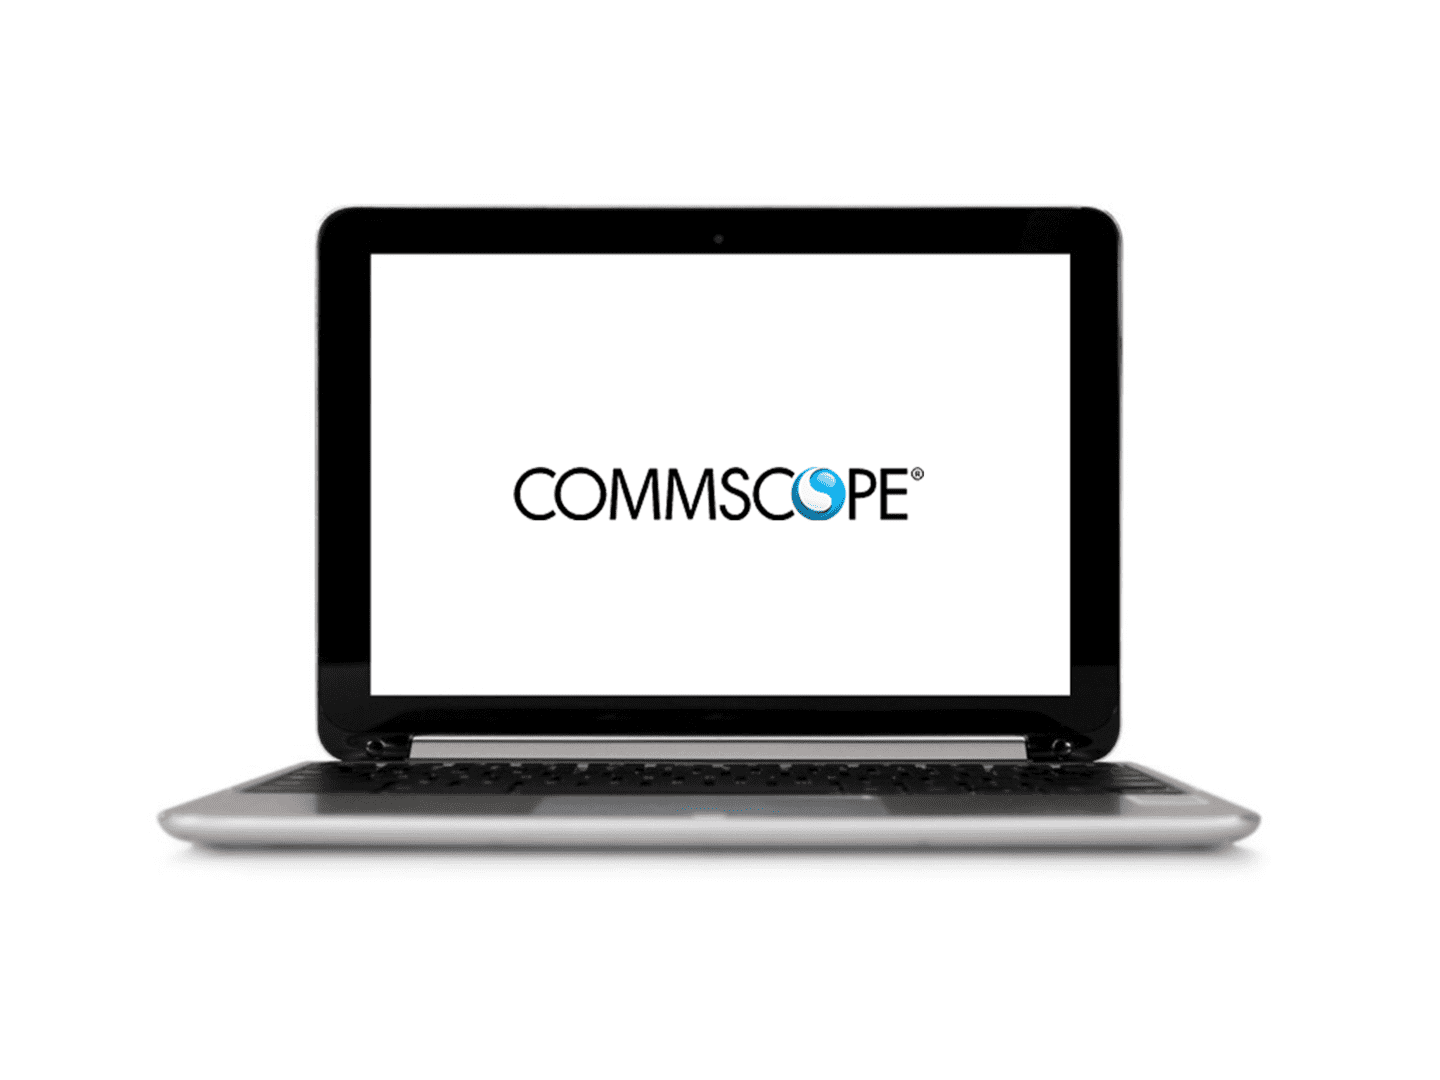 CommScope software system